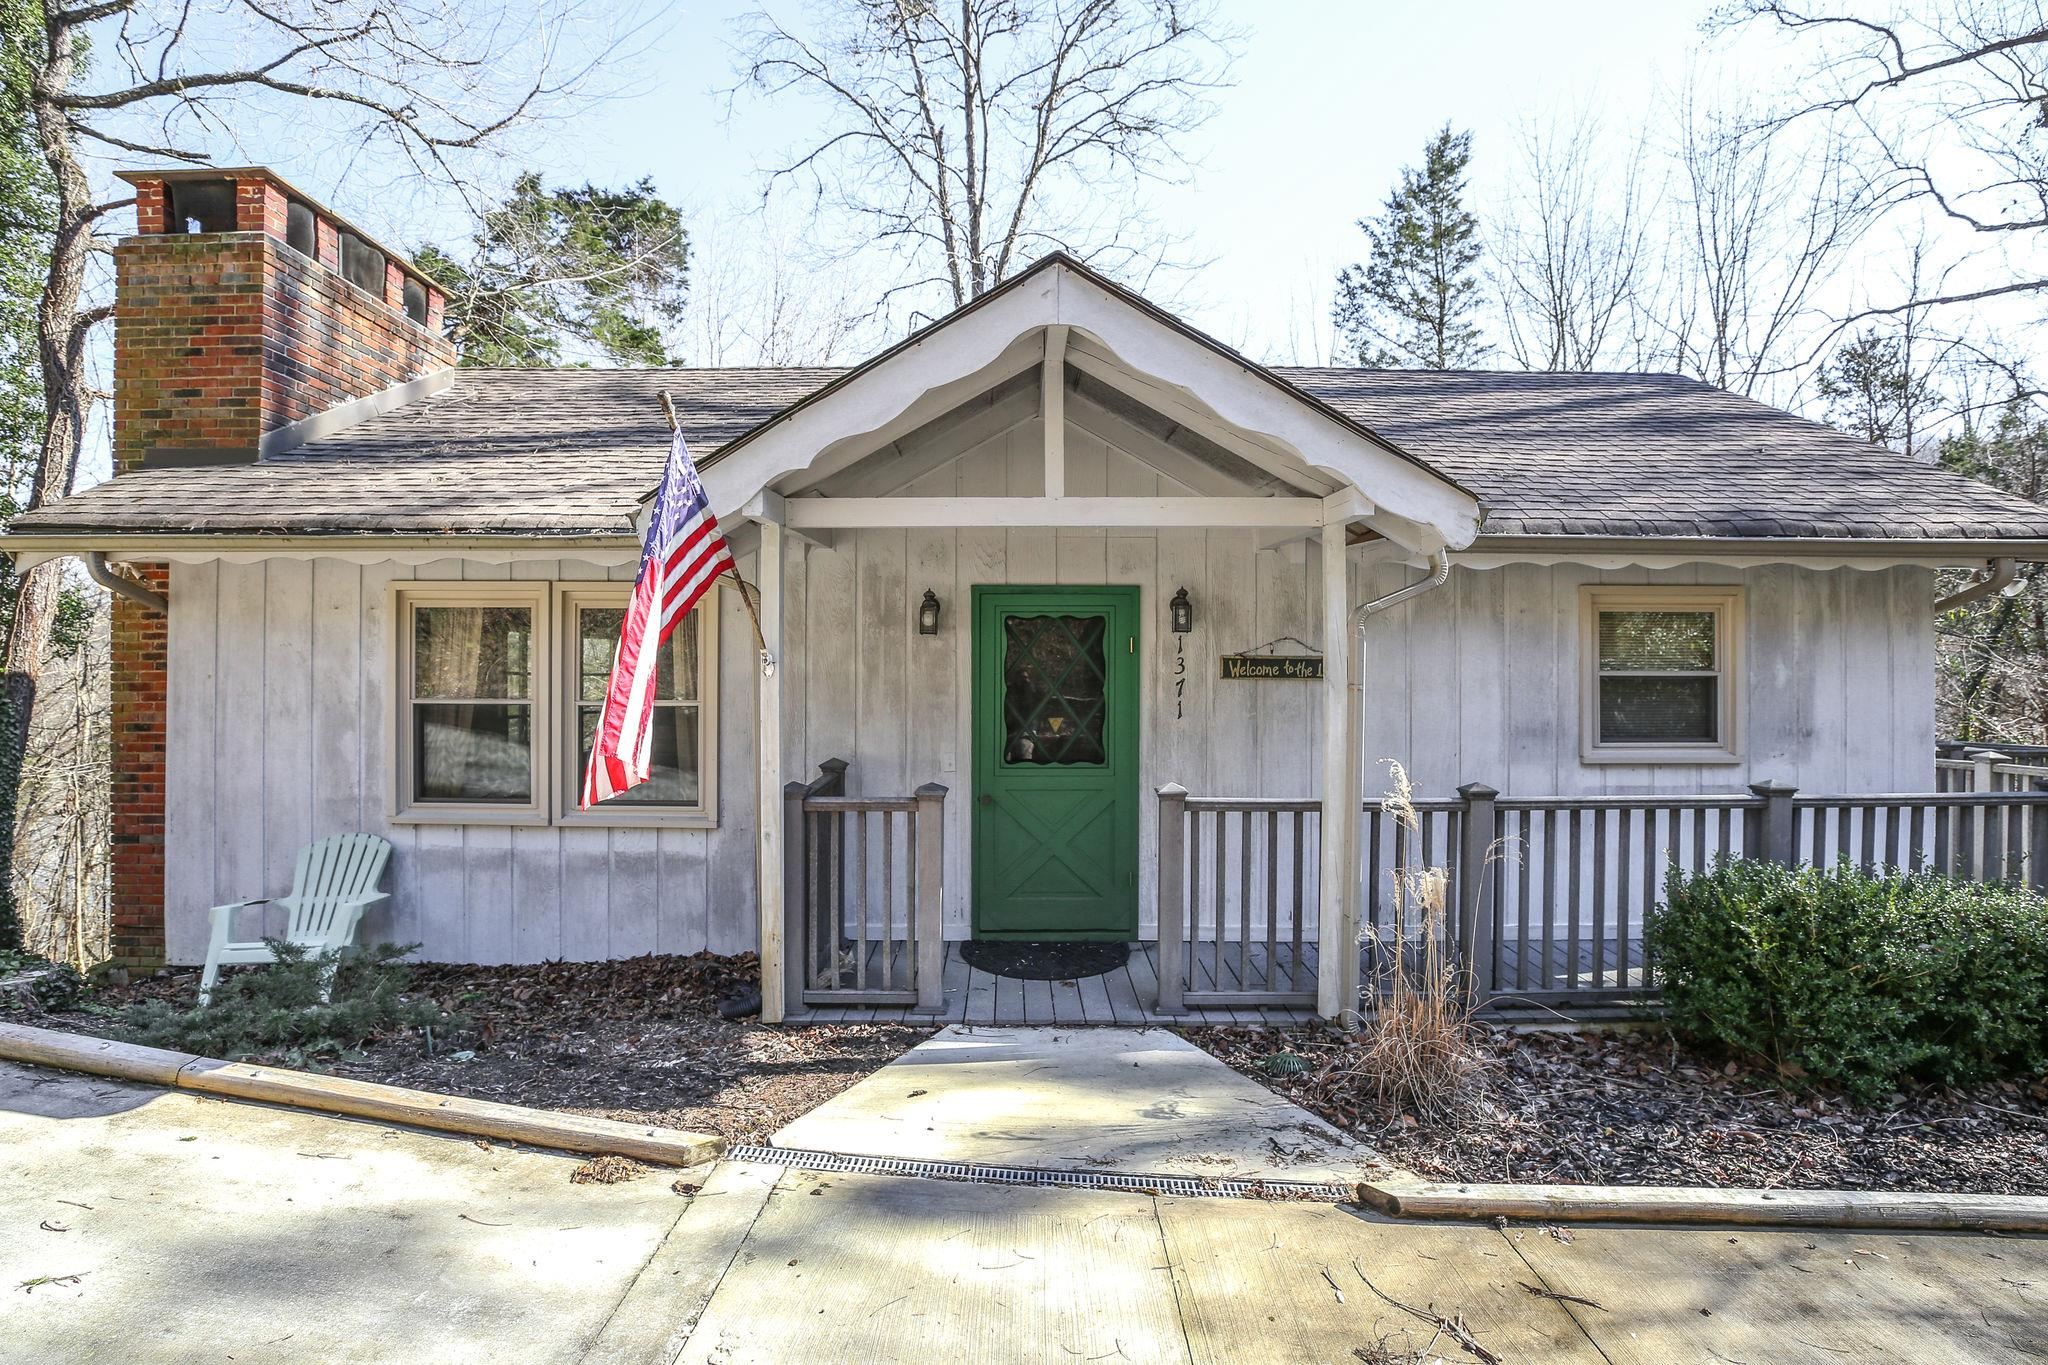 1371 Lakeside Dr, Smithville, TN 37166 - Smithville, TN real estate listing